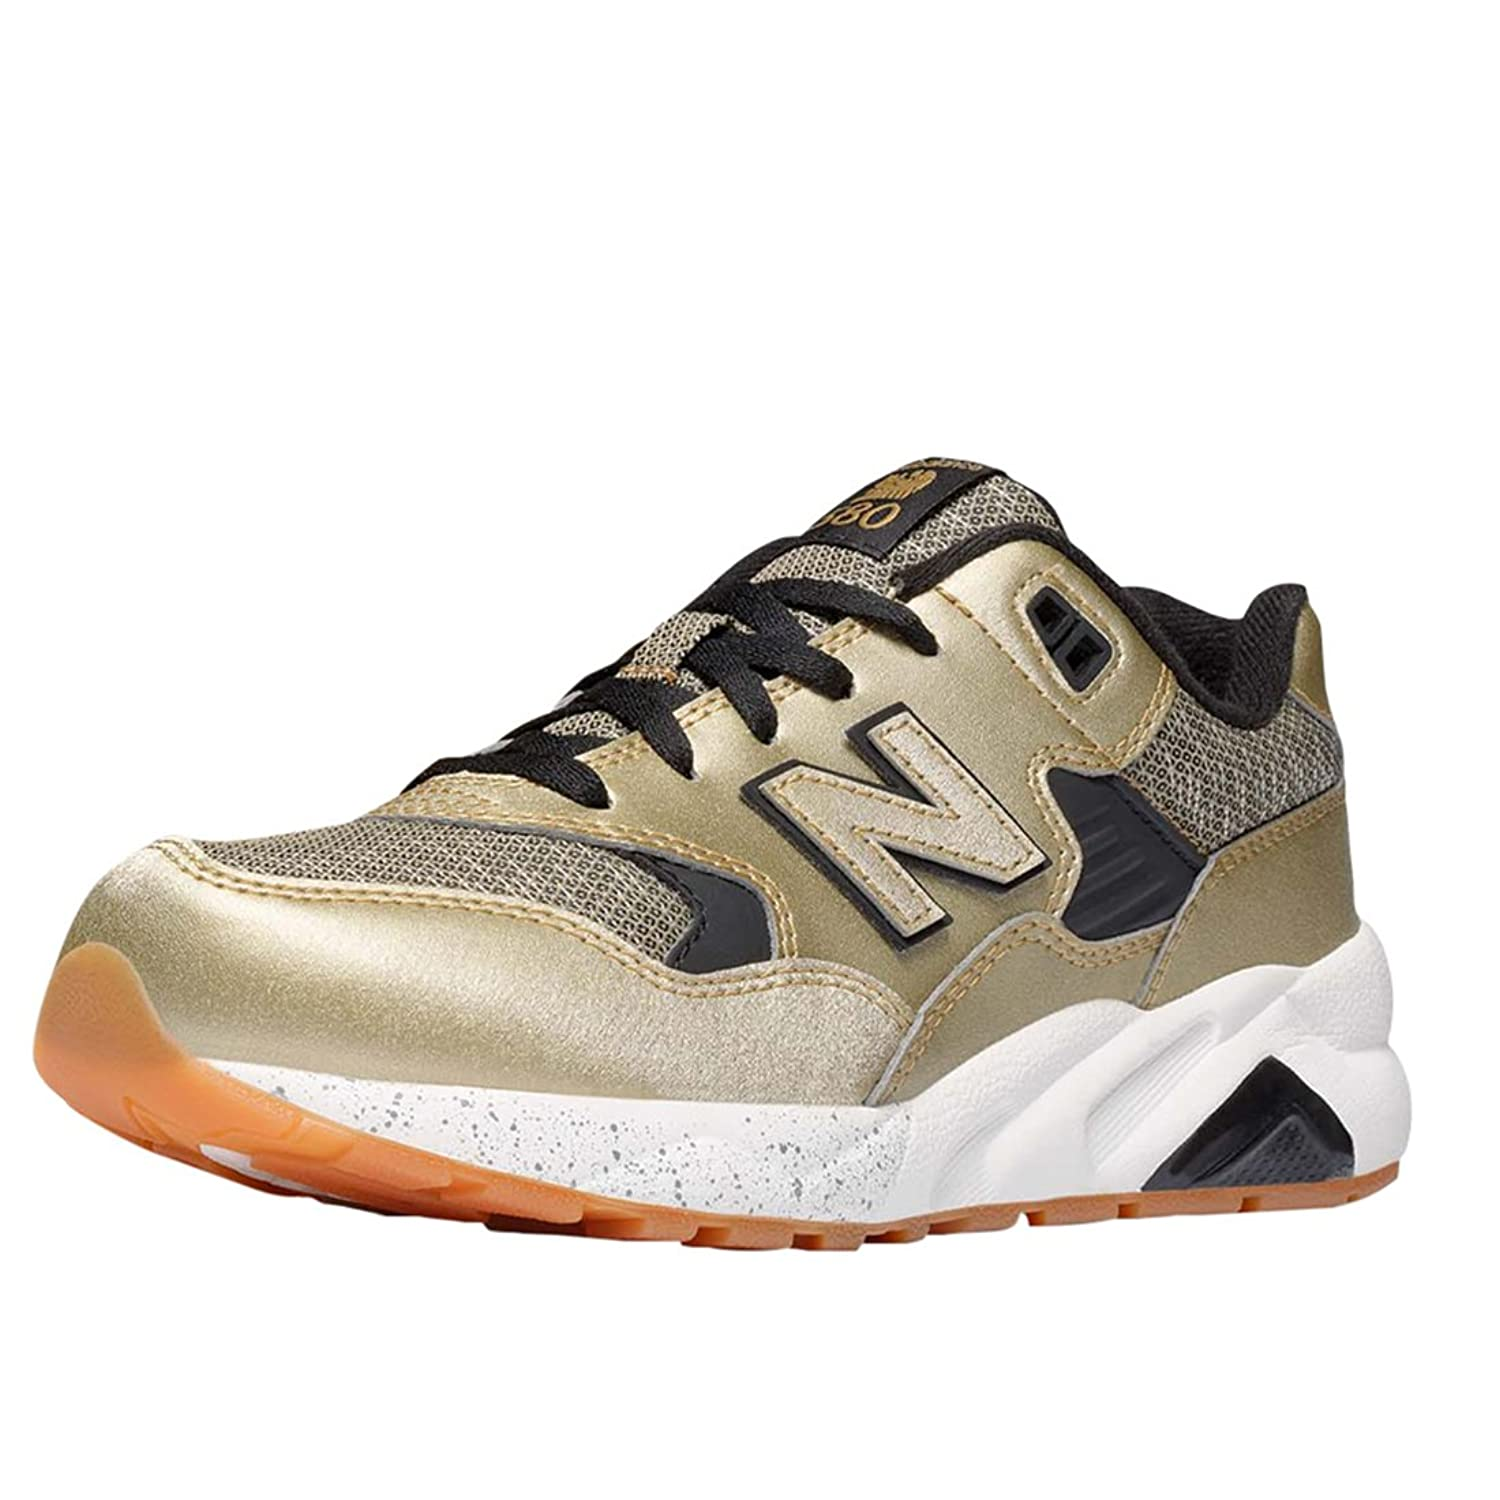 new balance 580 gold Sale,up to 51